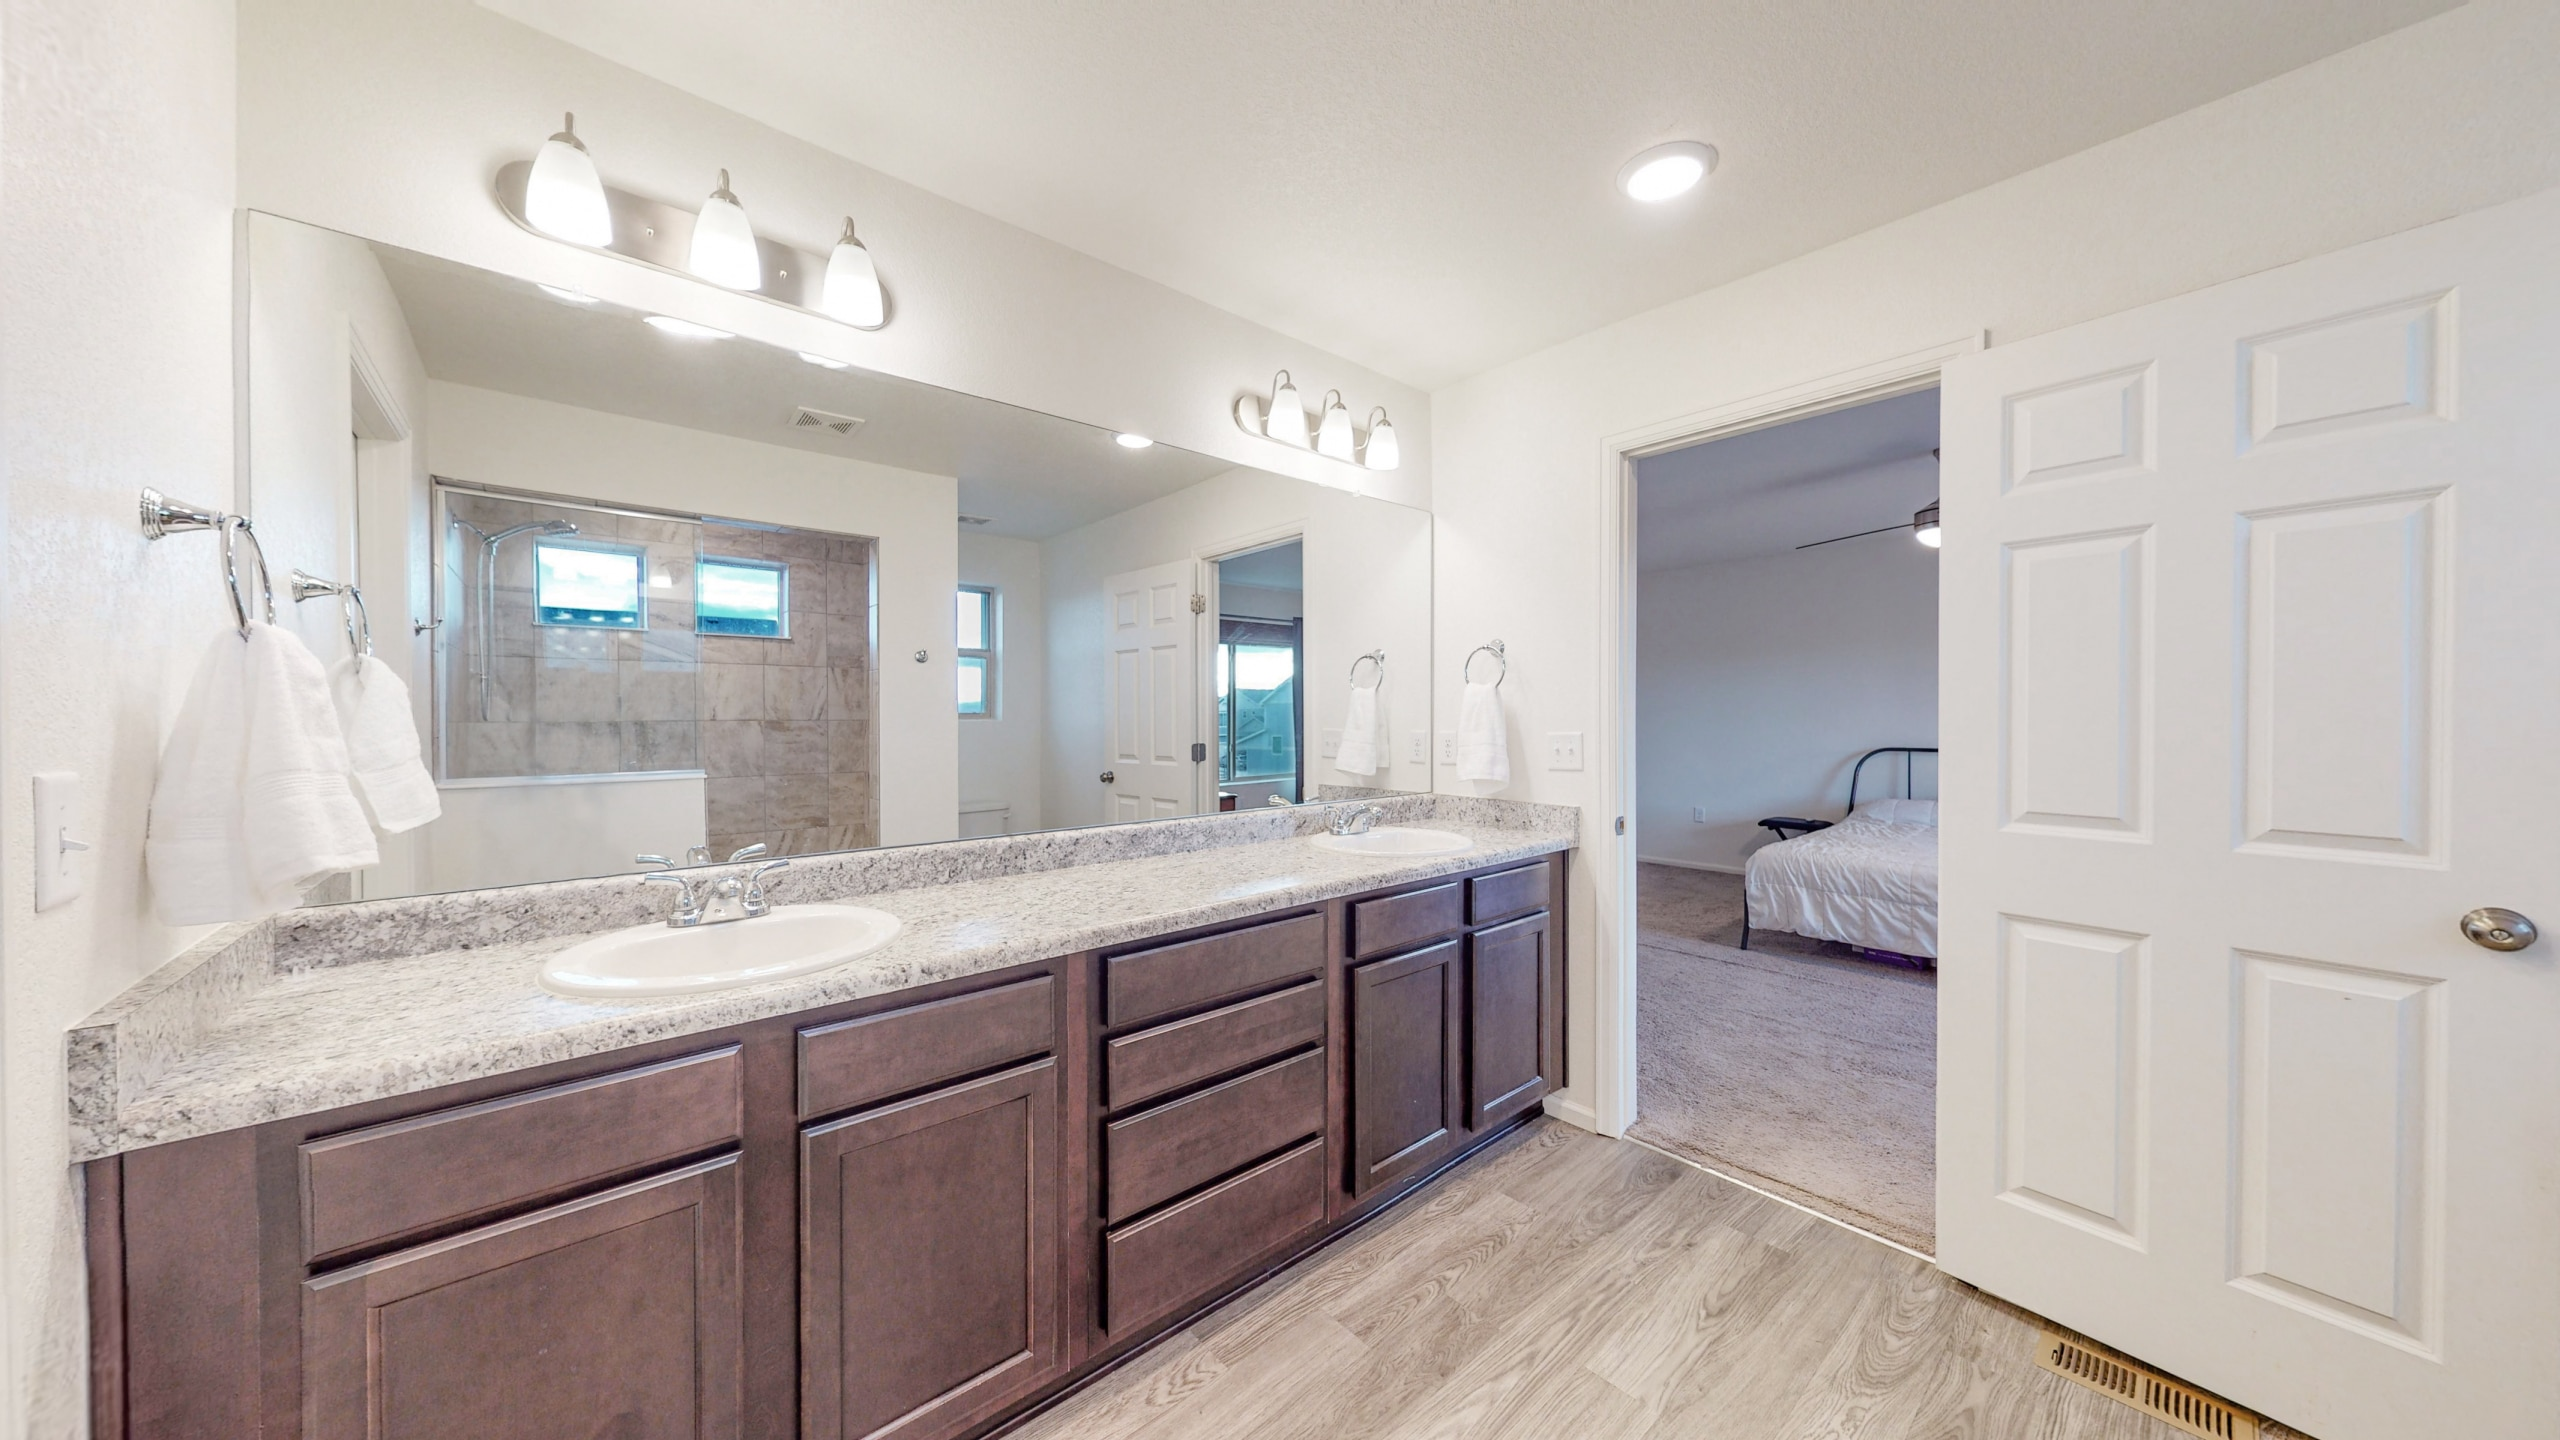 Commerce City, CO Home for sale, large walk-in closet with walk-in shower